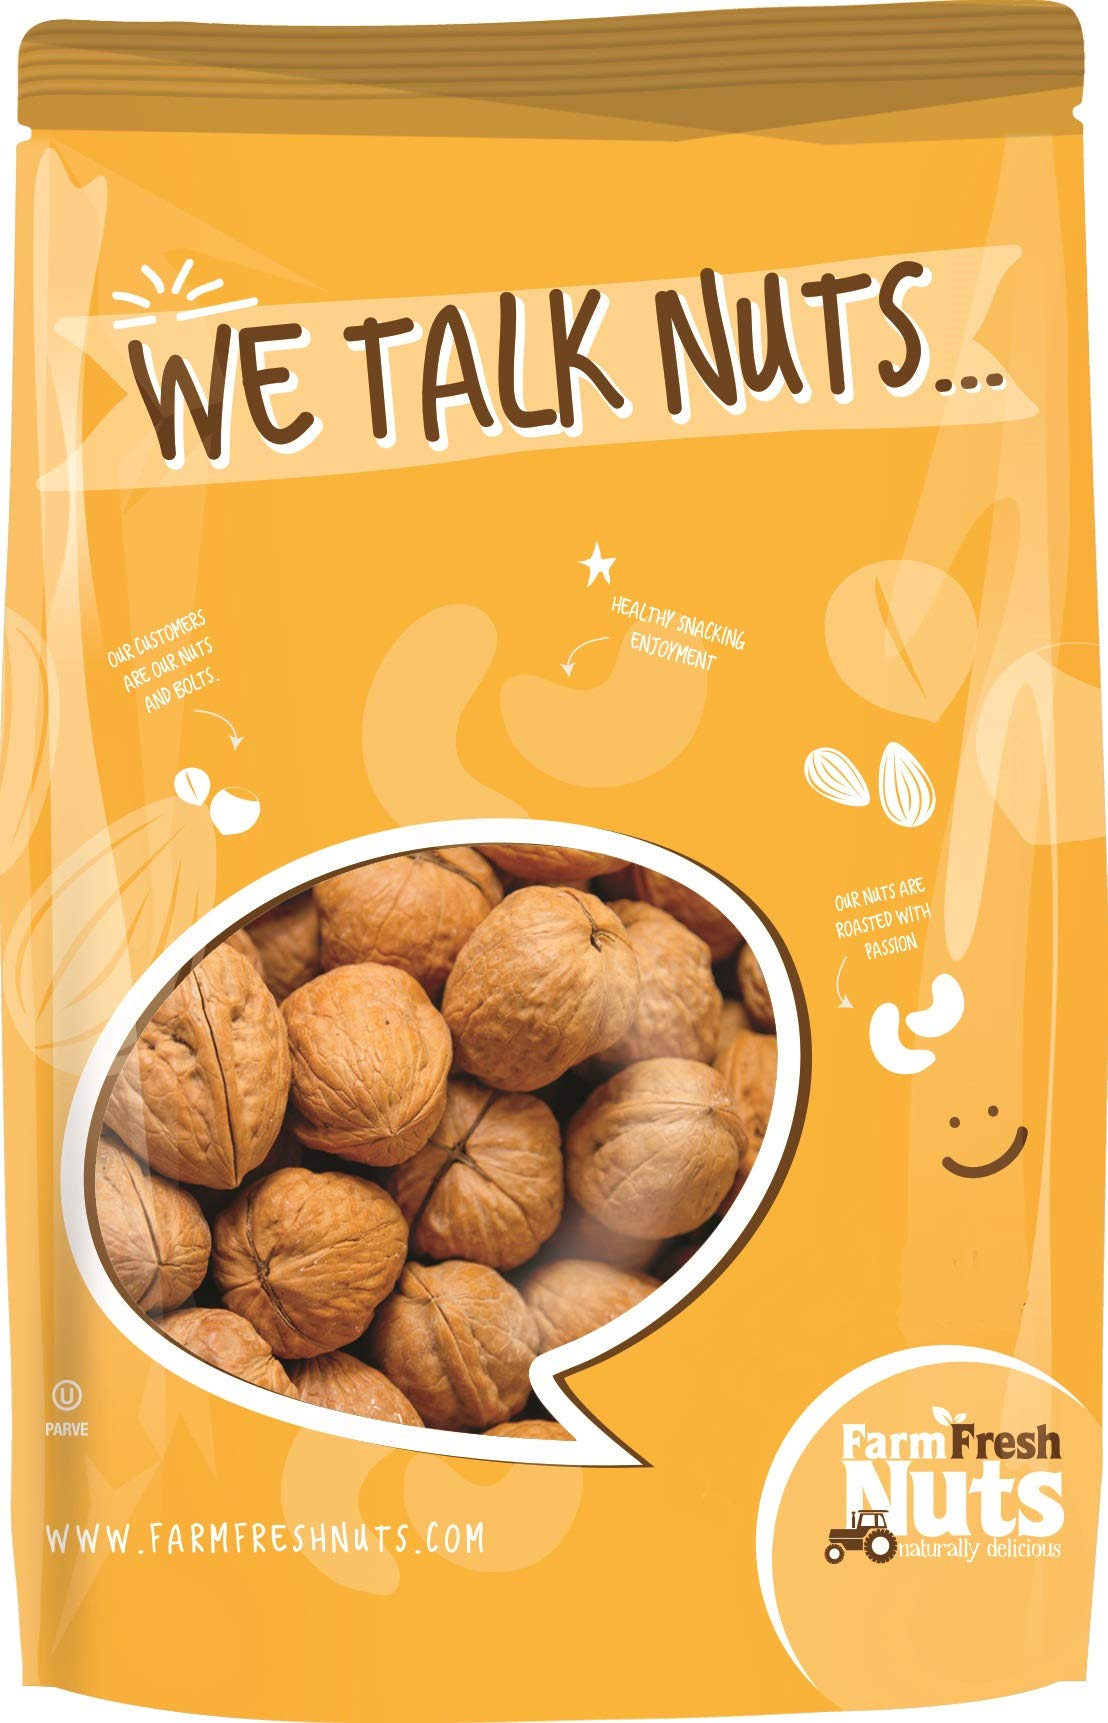 WALNUTS Natural In Shell -JUMBO California Walnuts - Great Source of Omega 3 - !! FRESH NEW CROP !! (4 LB) by Farm Fresh Nuts